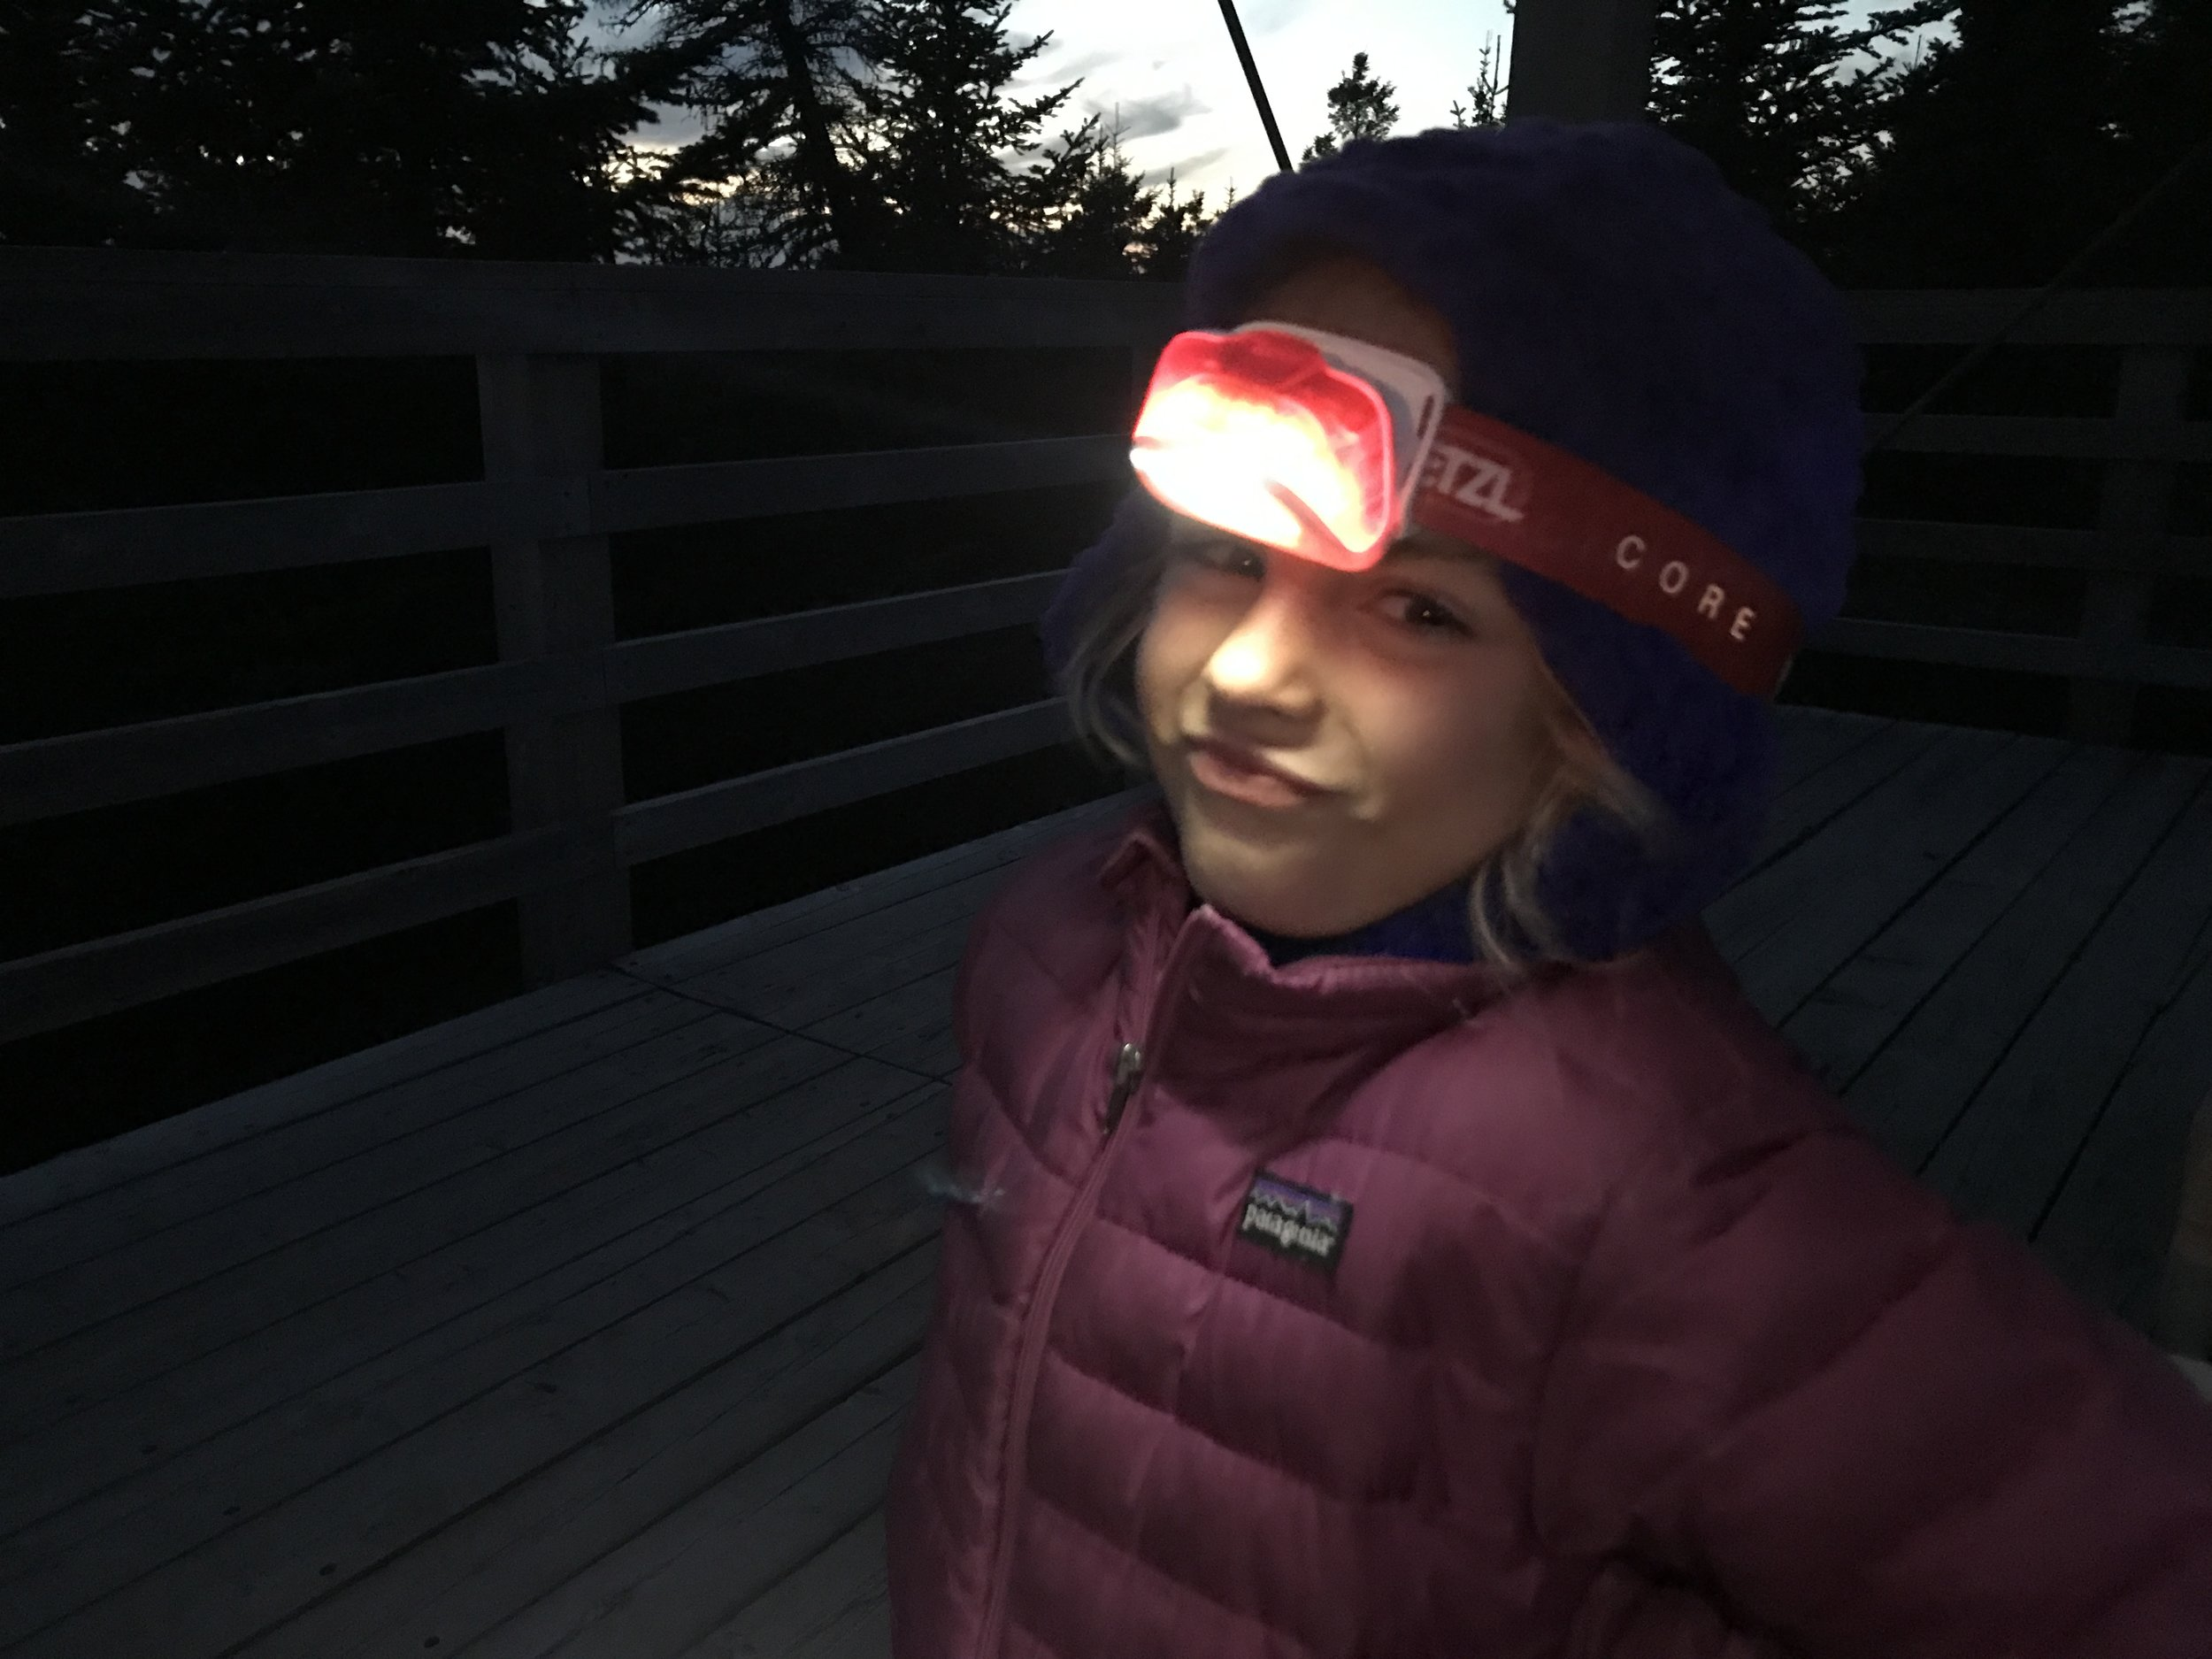 Ellie's not sure about hiking in the dark but she's ready to go. She had lots of fun playing with her shadow on the way down.